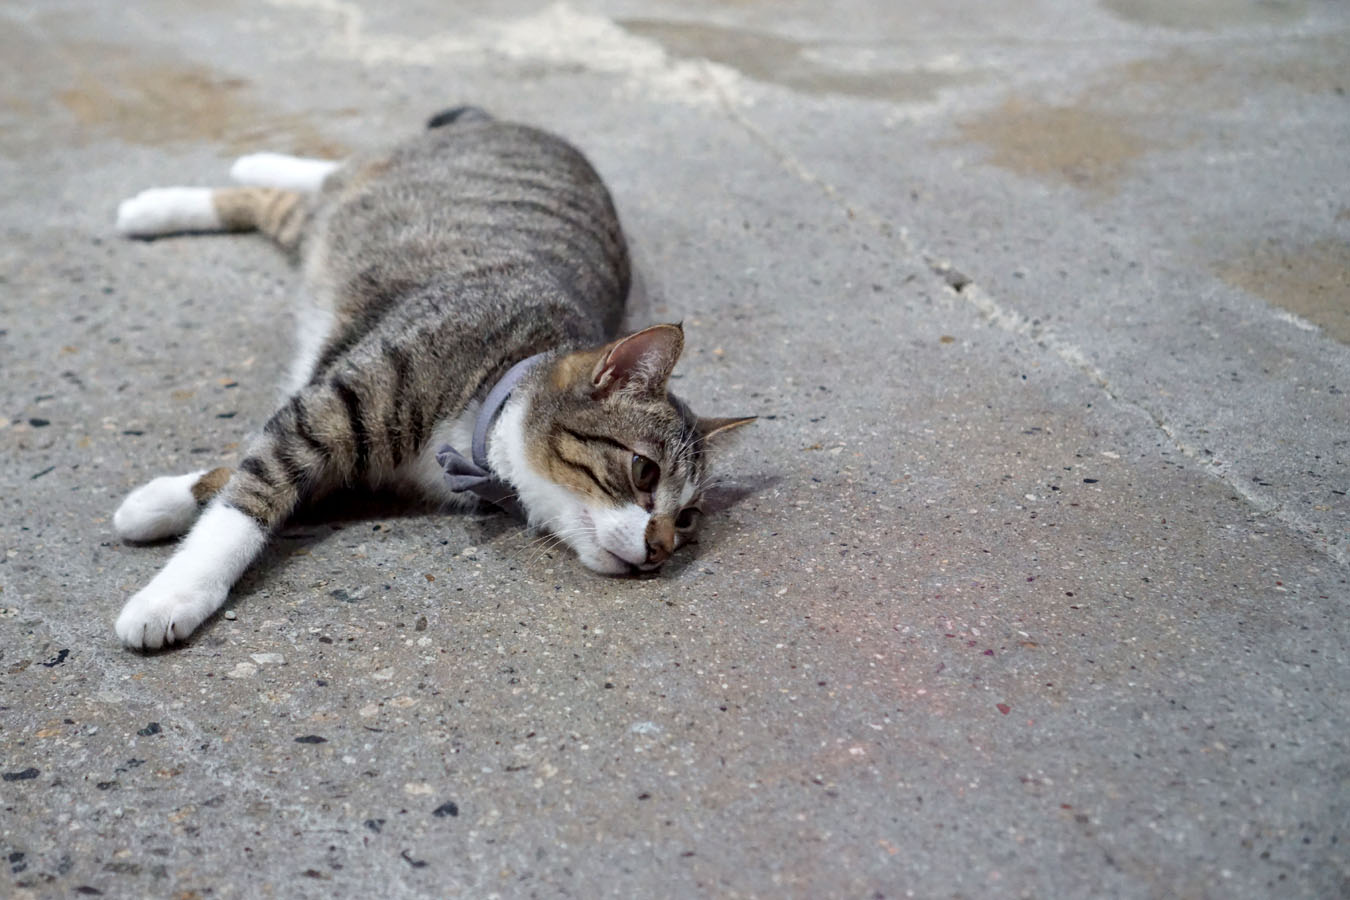 Cat sprawled out on the concrete floor